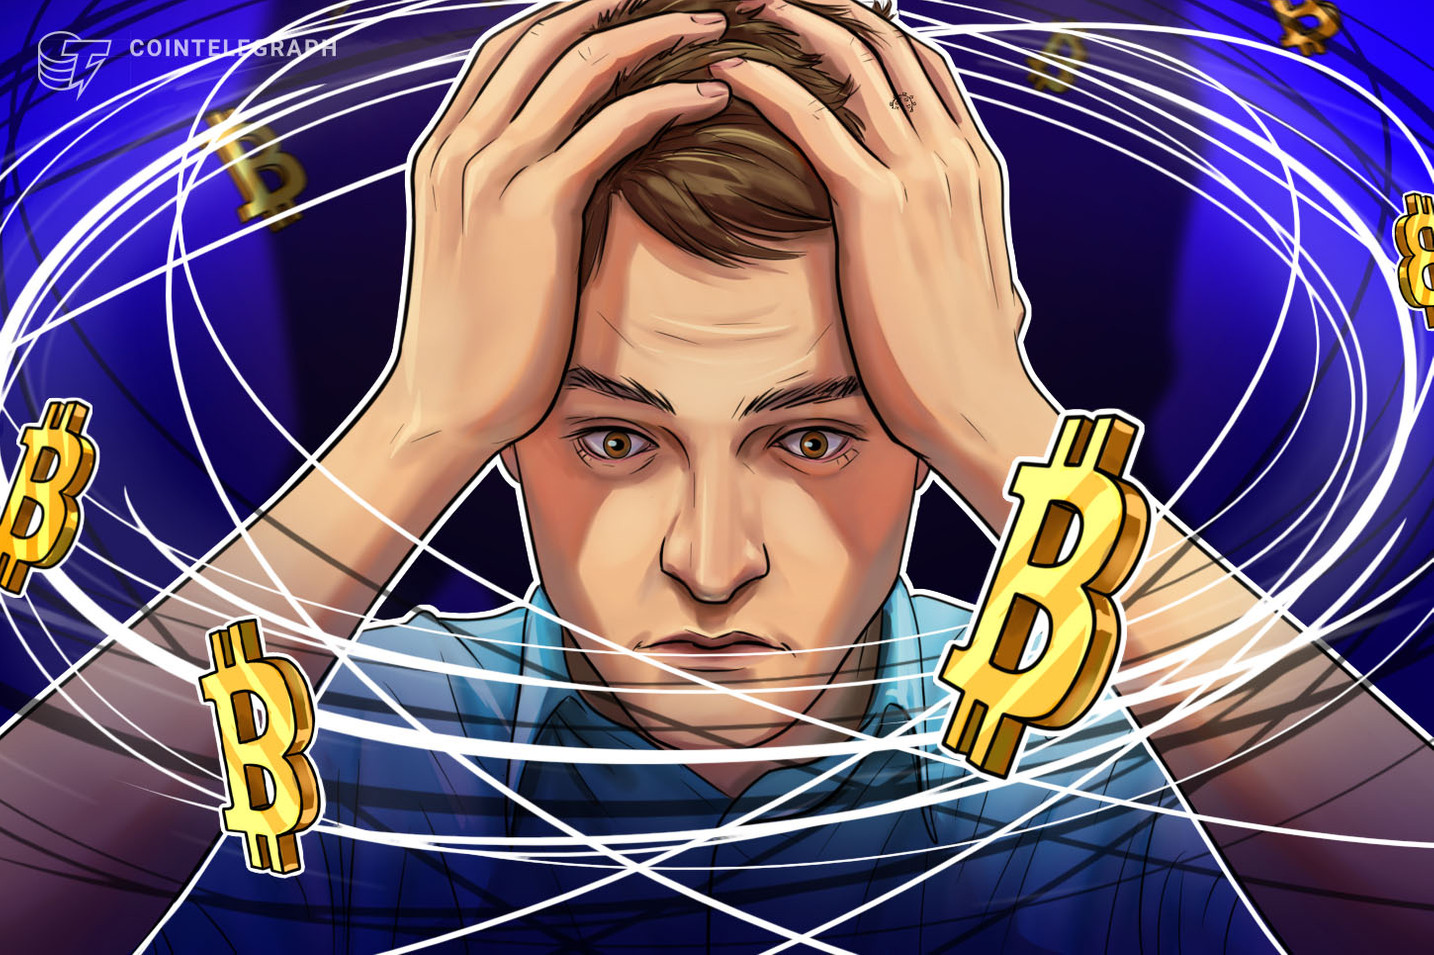 Early Bitcoin dev misses out on $1.3B after selling too soon